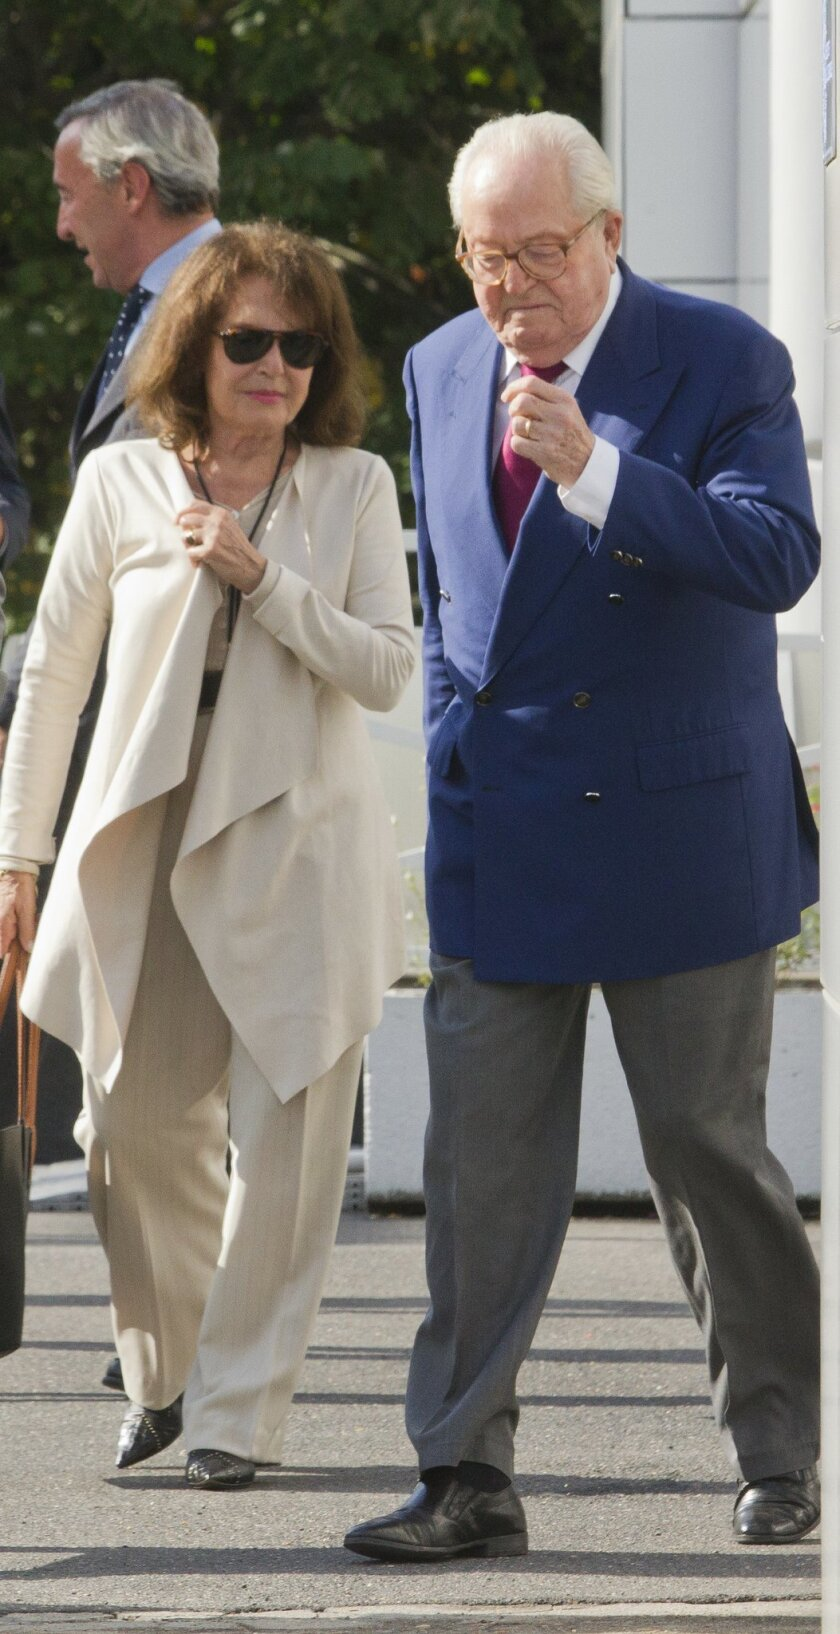 Jean-Marie le Pen, former head of far-right party National Front, and his wife Jany, leave the party headquarters in Nanterre, outside Paris, France, Thursday, Aug 20, 2015, after a meeting to decide whether he would be excluded from the party. (AP Photo/Jacques Brinon)